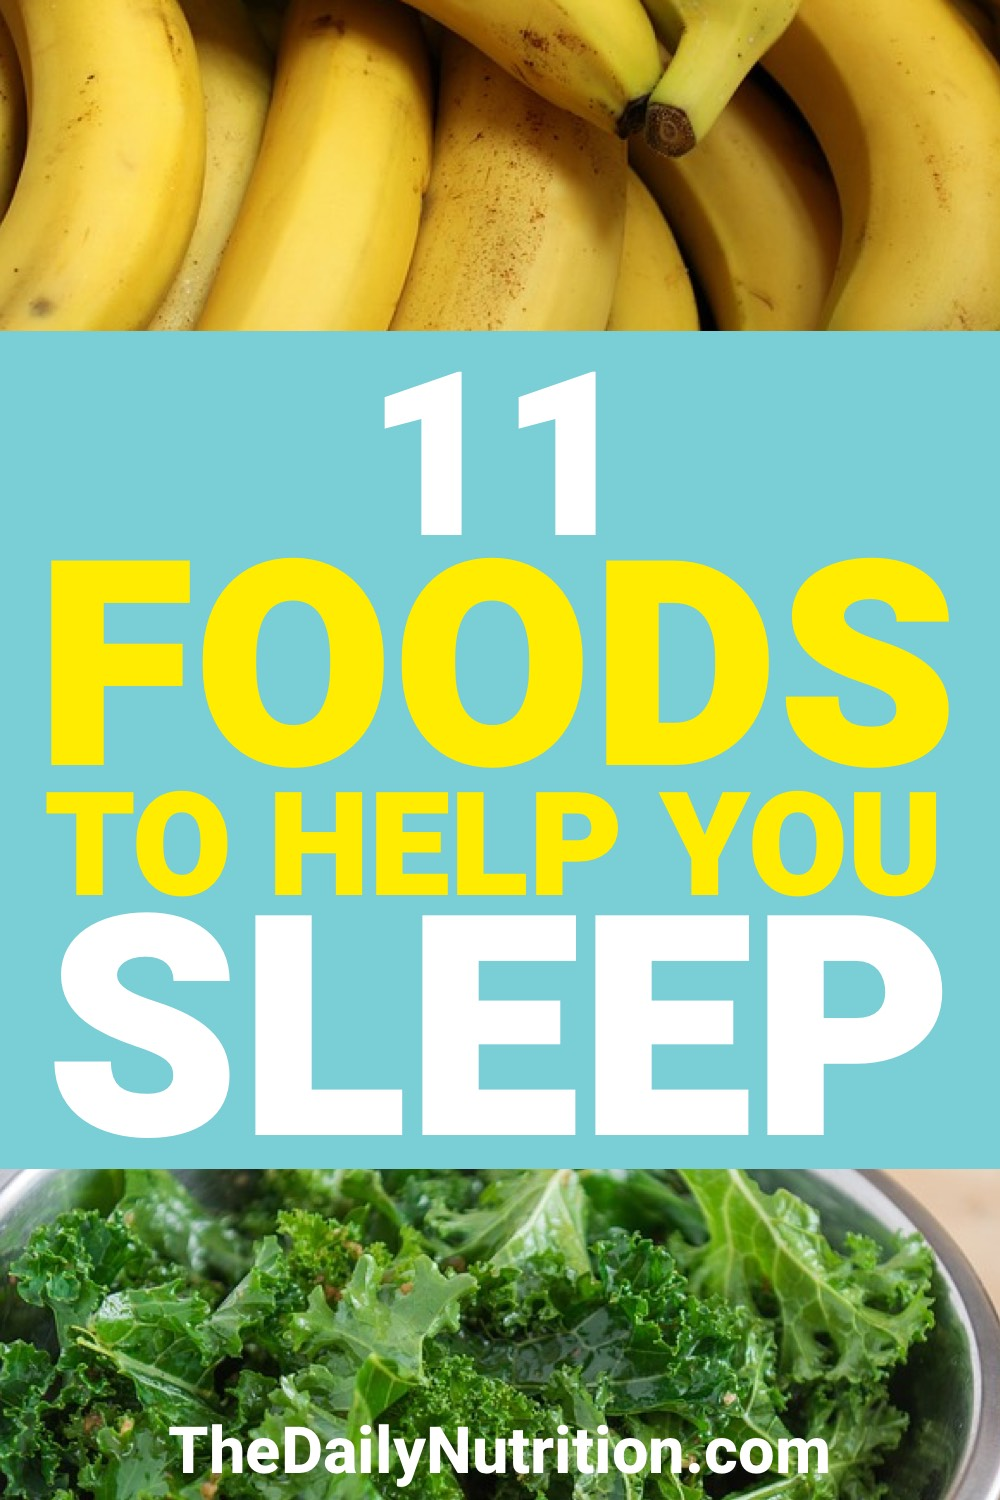 Sleeping can come as a struggle to some. Here are 11 foods that will help you get the sleep you want.